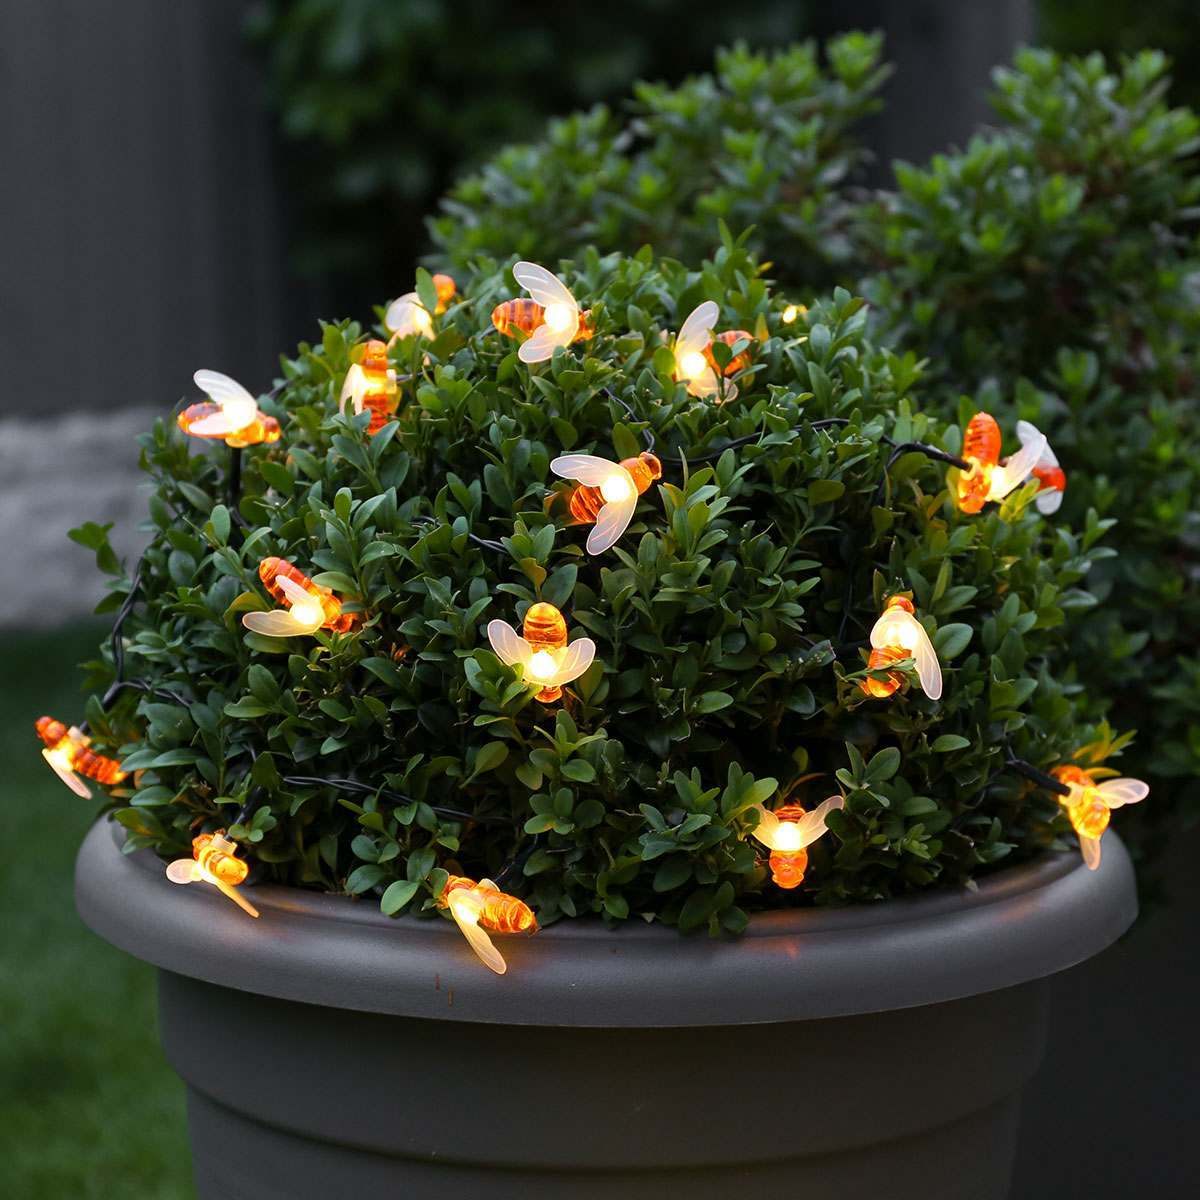 50 Warm White Outdoor Battery Bee Cap Fairy Lights With Timer